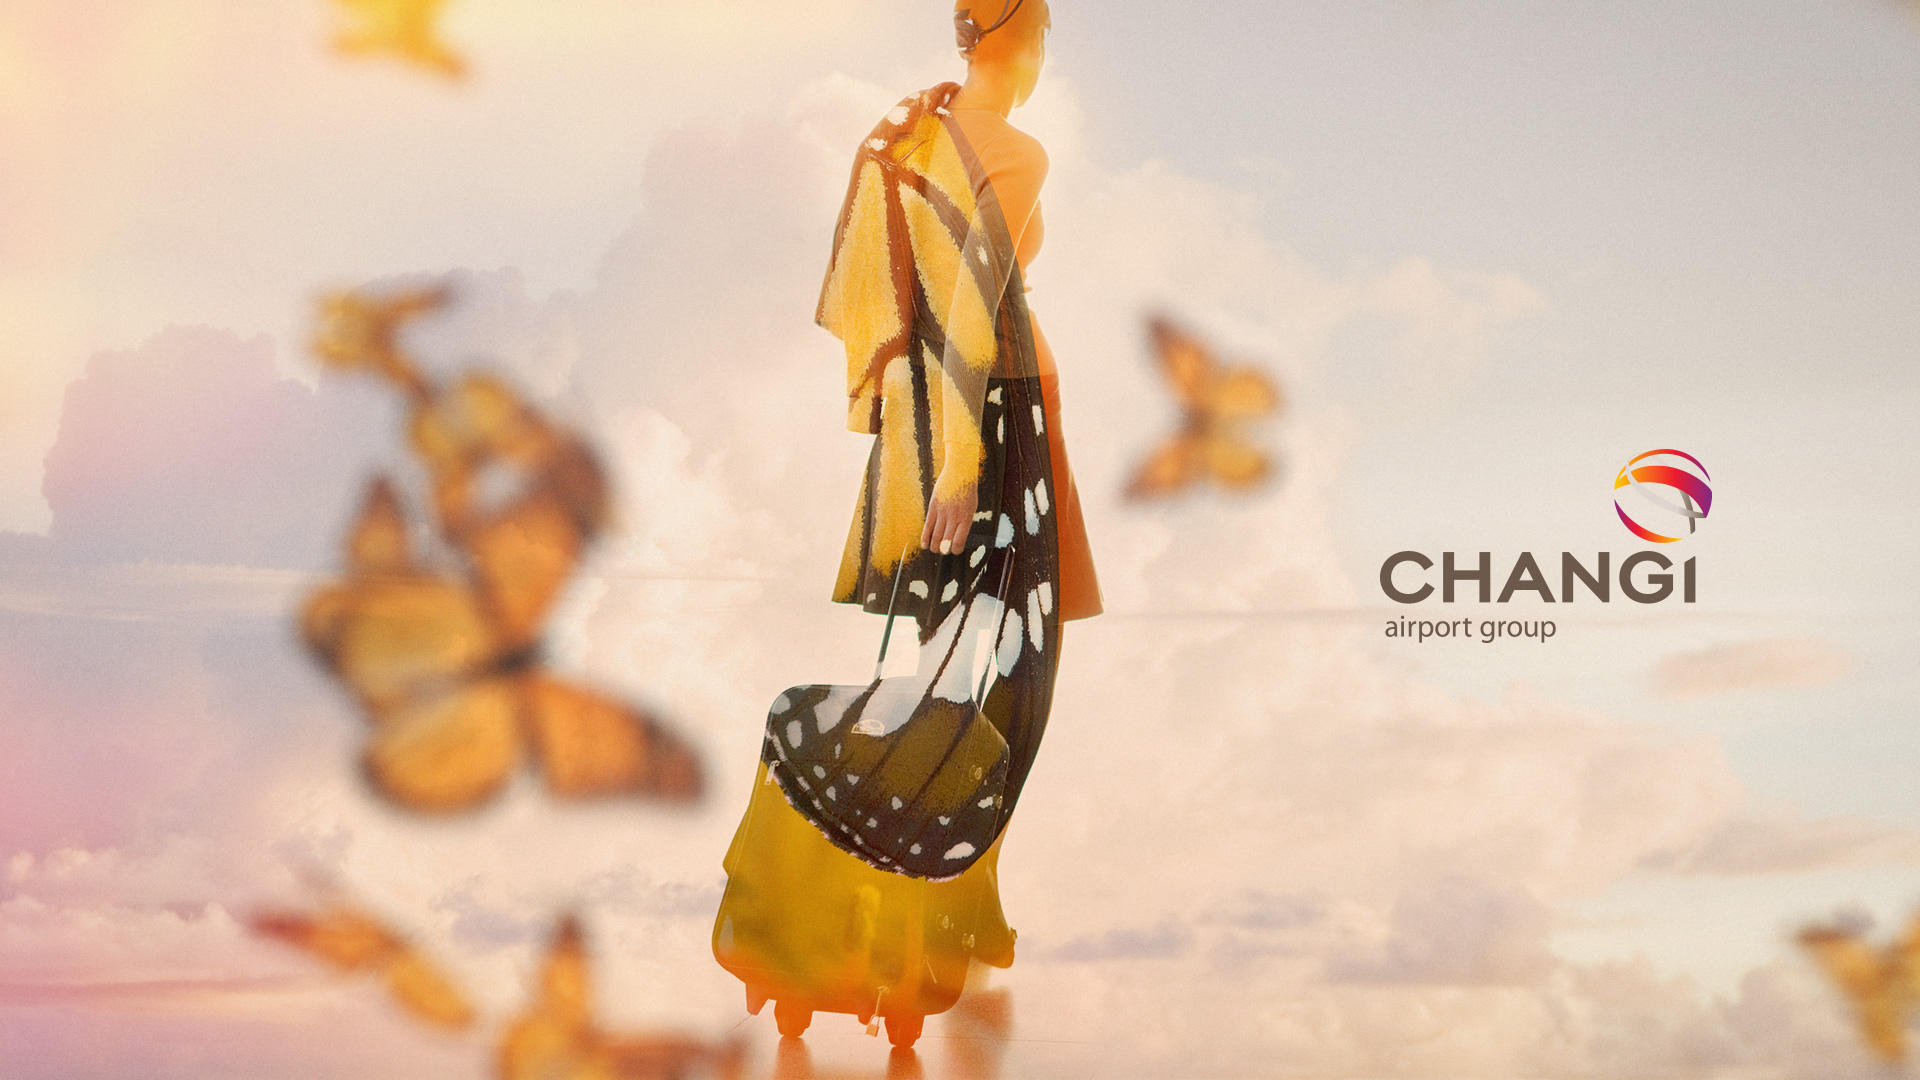 Changi Airport  Brand campaign, visual treatment.